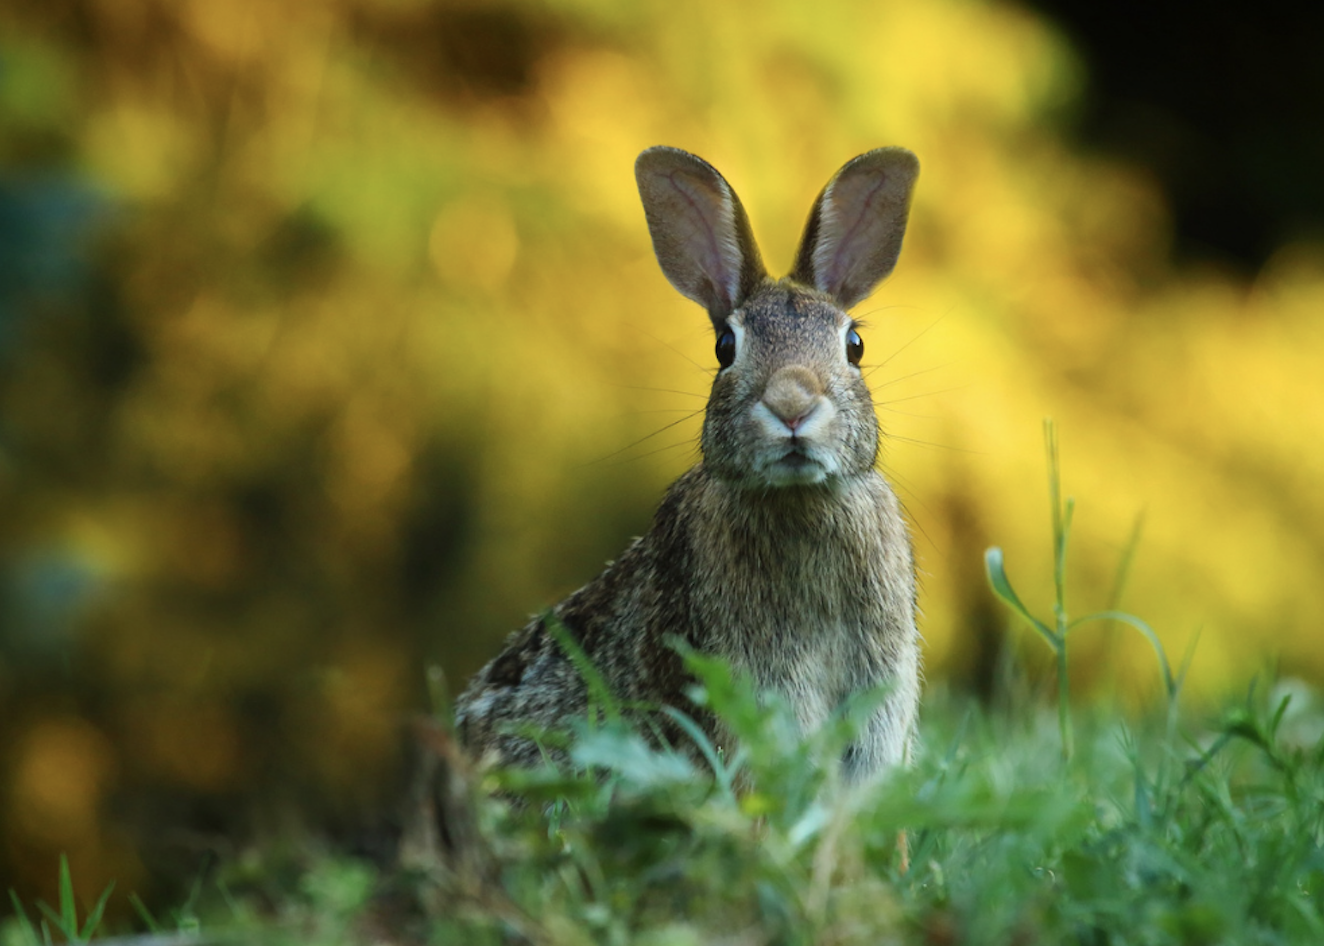 A rabbit in a field.